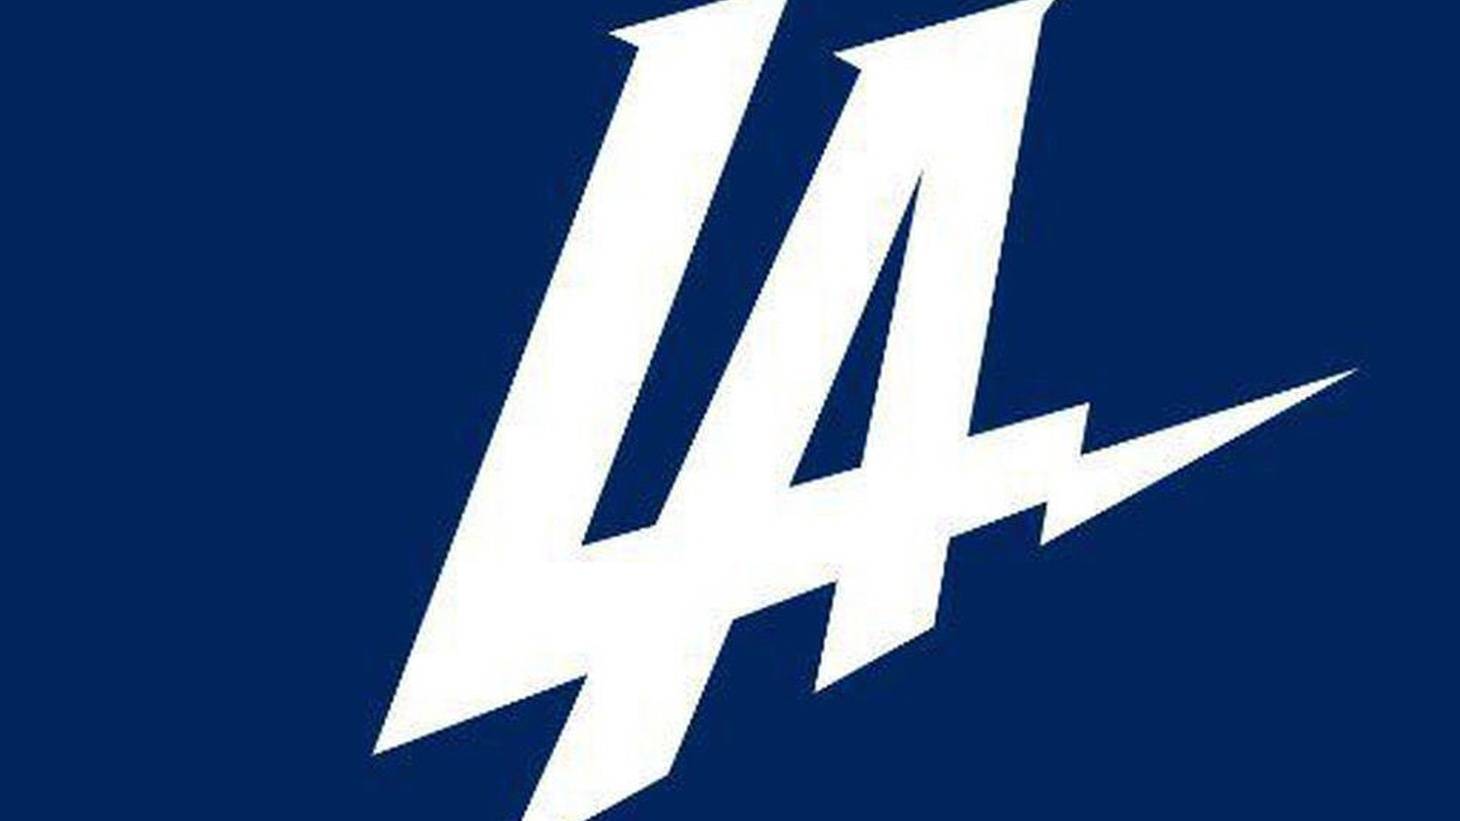 Last week's decision to move the San Diego Chargers to Los Angeles upset a lot of football fans in San Diego. But when the new L.A. Chargers logo was unveiled, that upset a lot of people too - because it was awful. The team promptly introduced two more logos, which were all ridiculed online. Why do new logos incite so much passion?